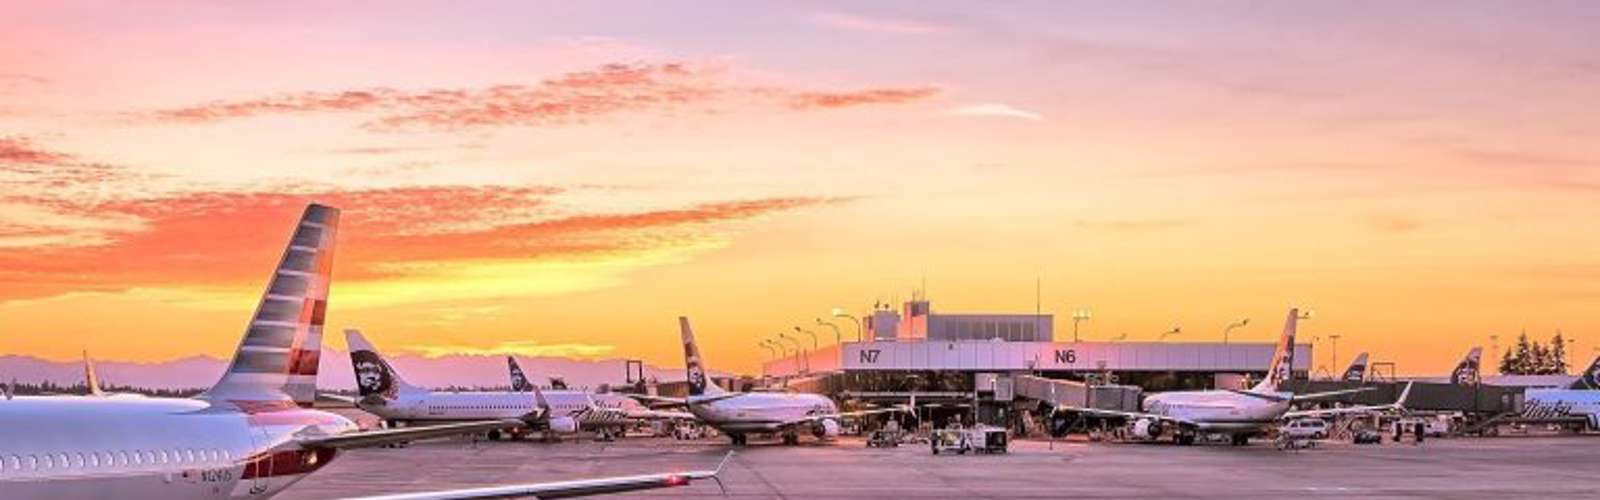 VoIP Plays Major Role in Airline Business